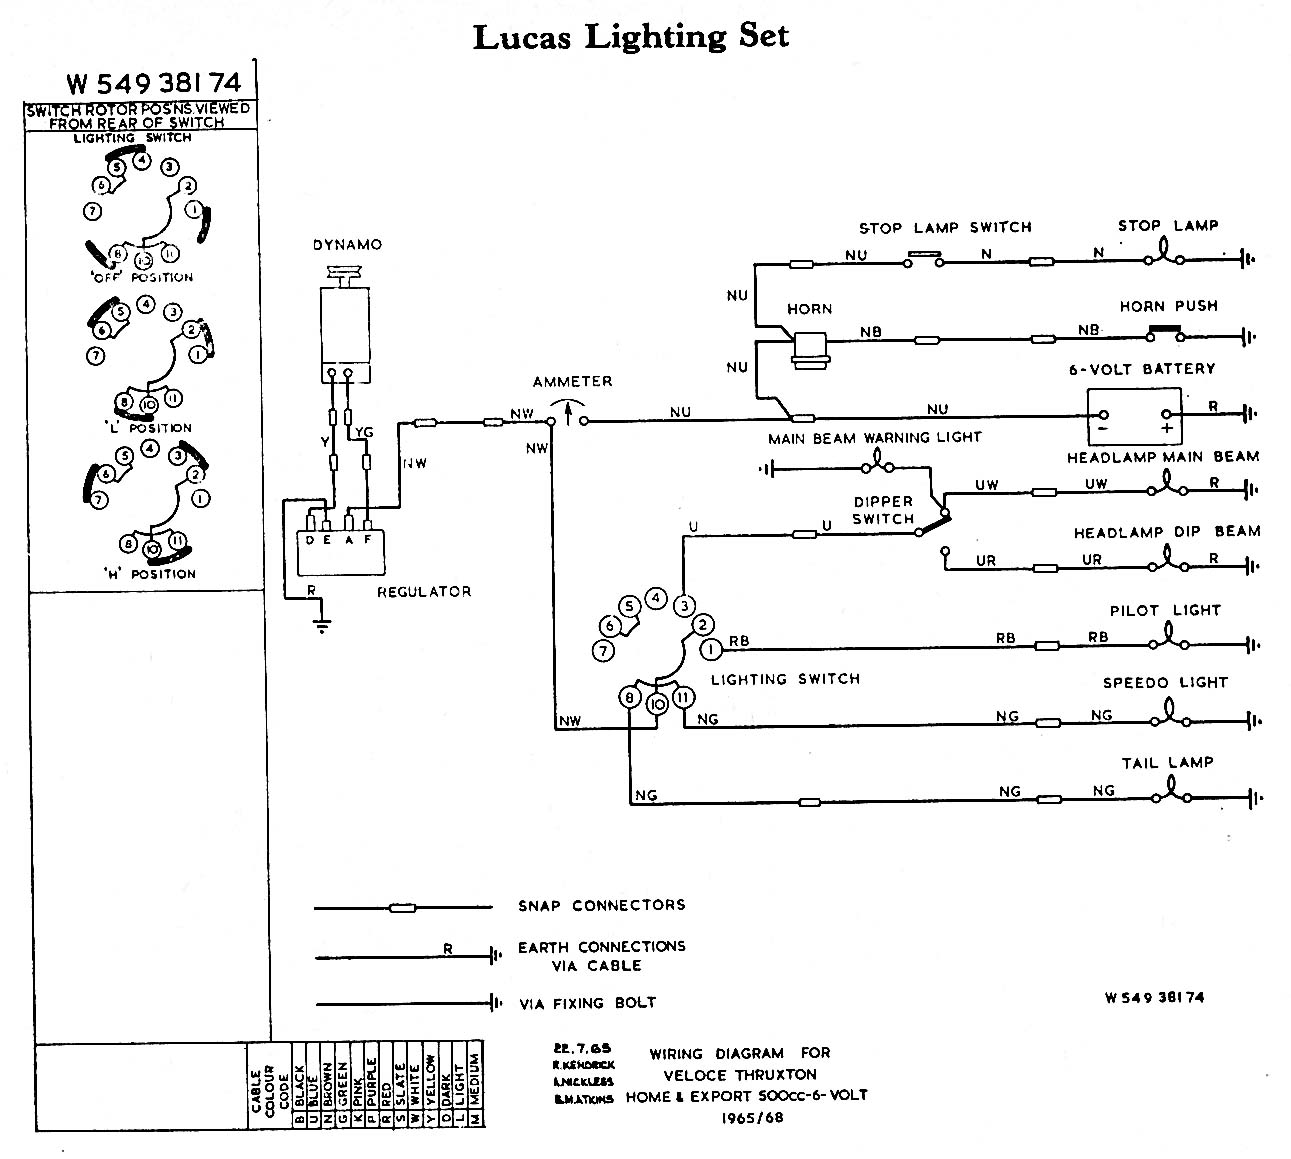 Velocette Owners Club Technical Information Wiring Diagrams Miller 250 Diagram Lucas Lighting Set Switch With Dynamo Avc